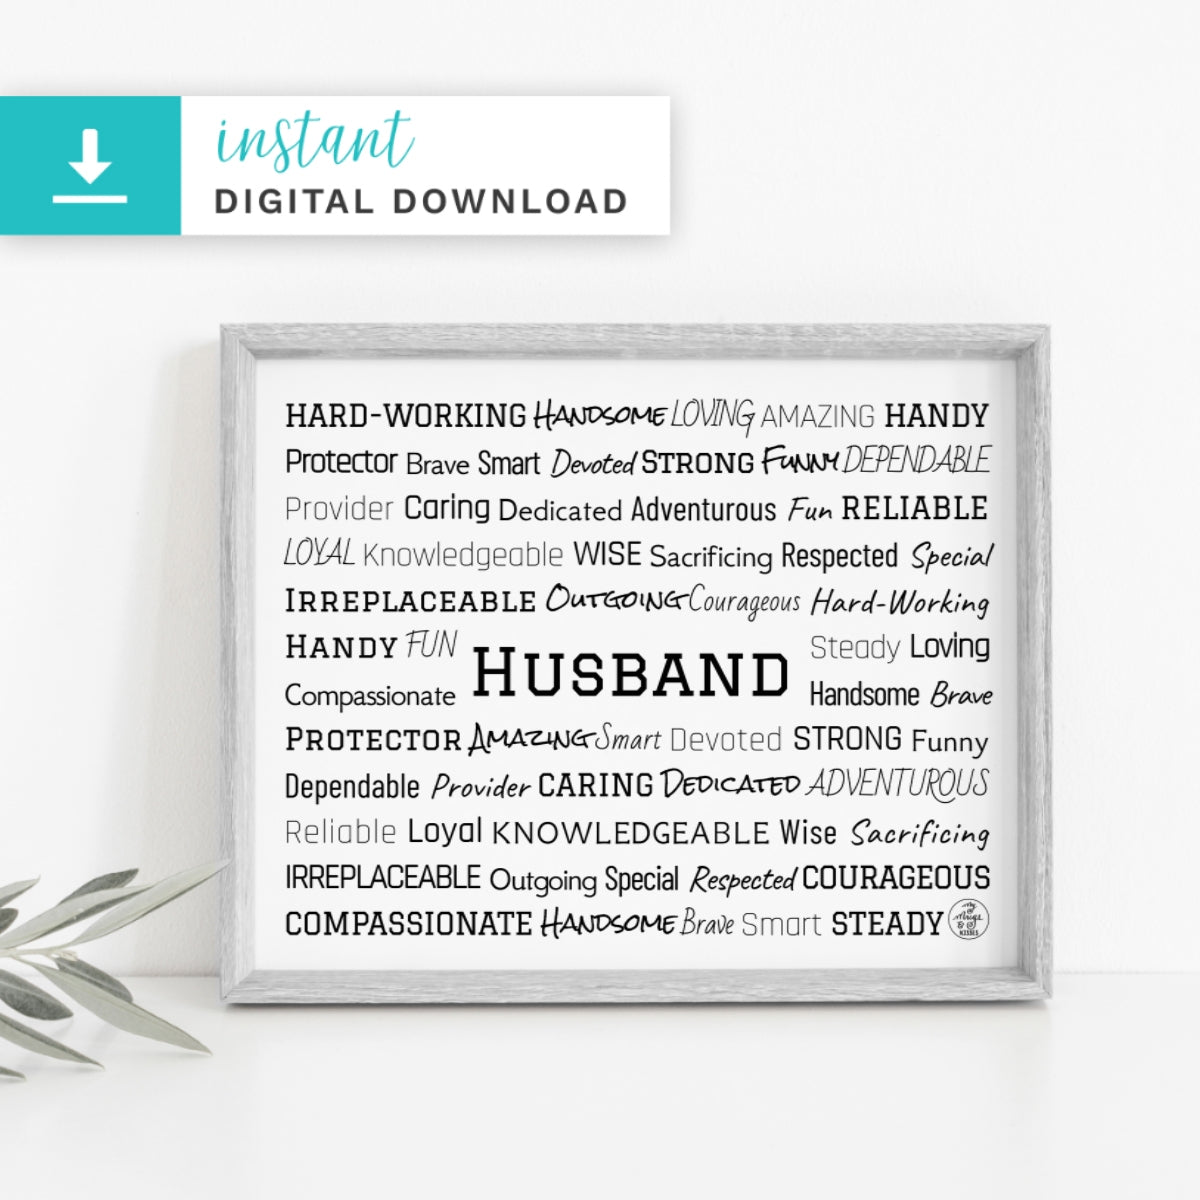 Husband Digital Download